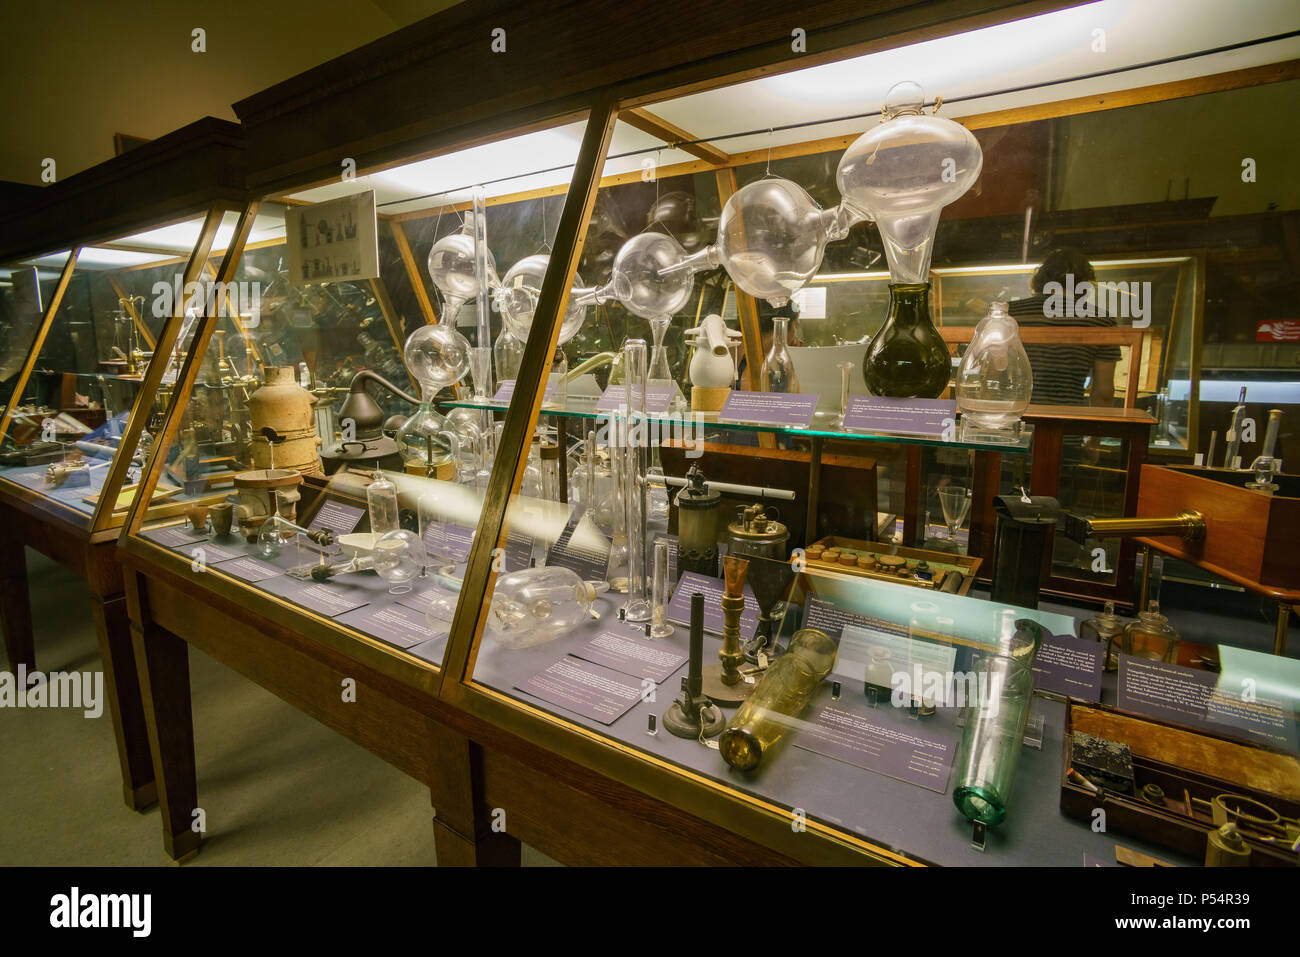 Oxford, JUL 9: Interior view of the Museum of the History of Science on JUL 9, 2017 at Oxford, United Kingdom - Stock Image